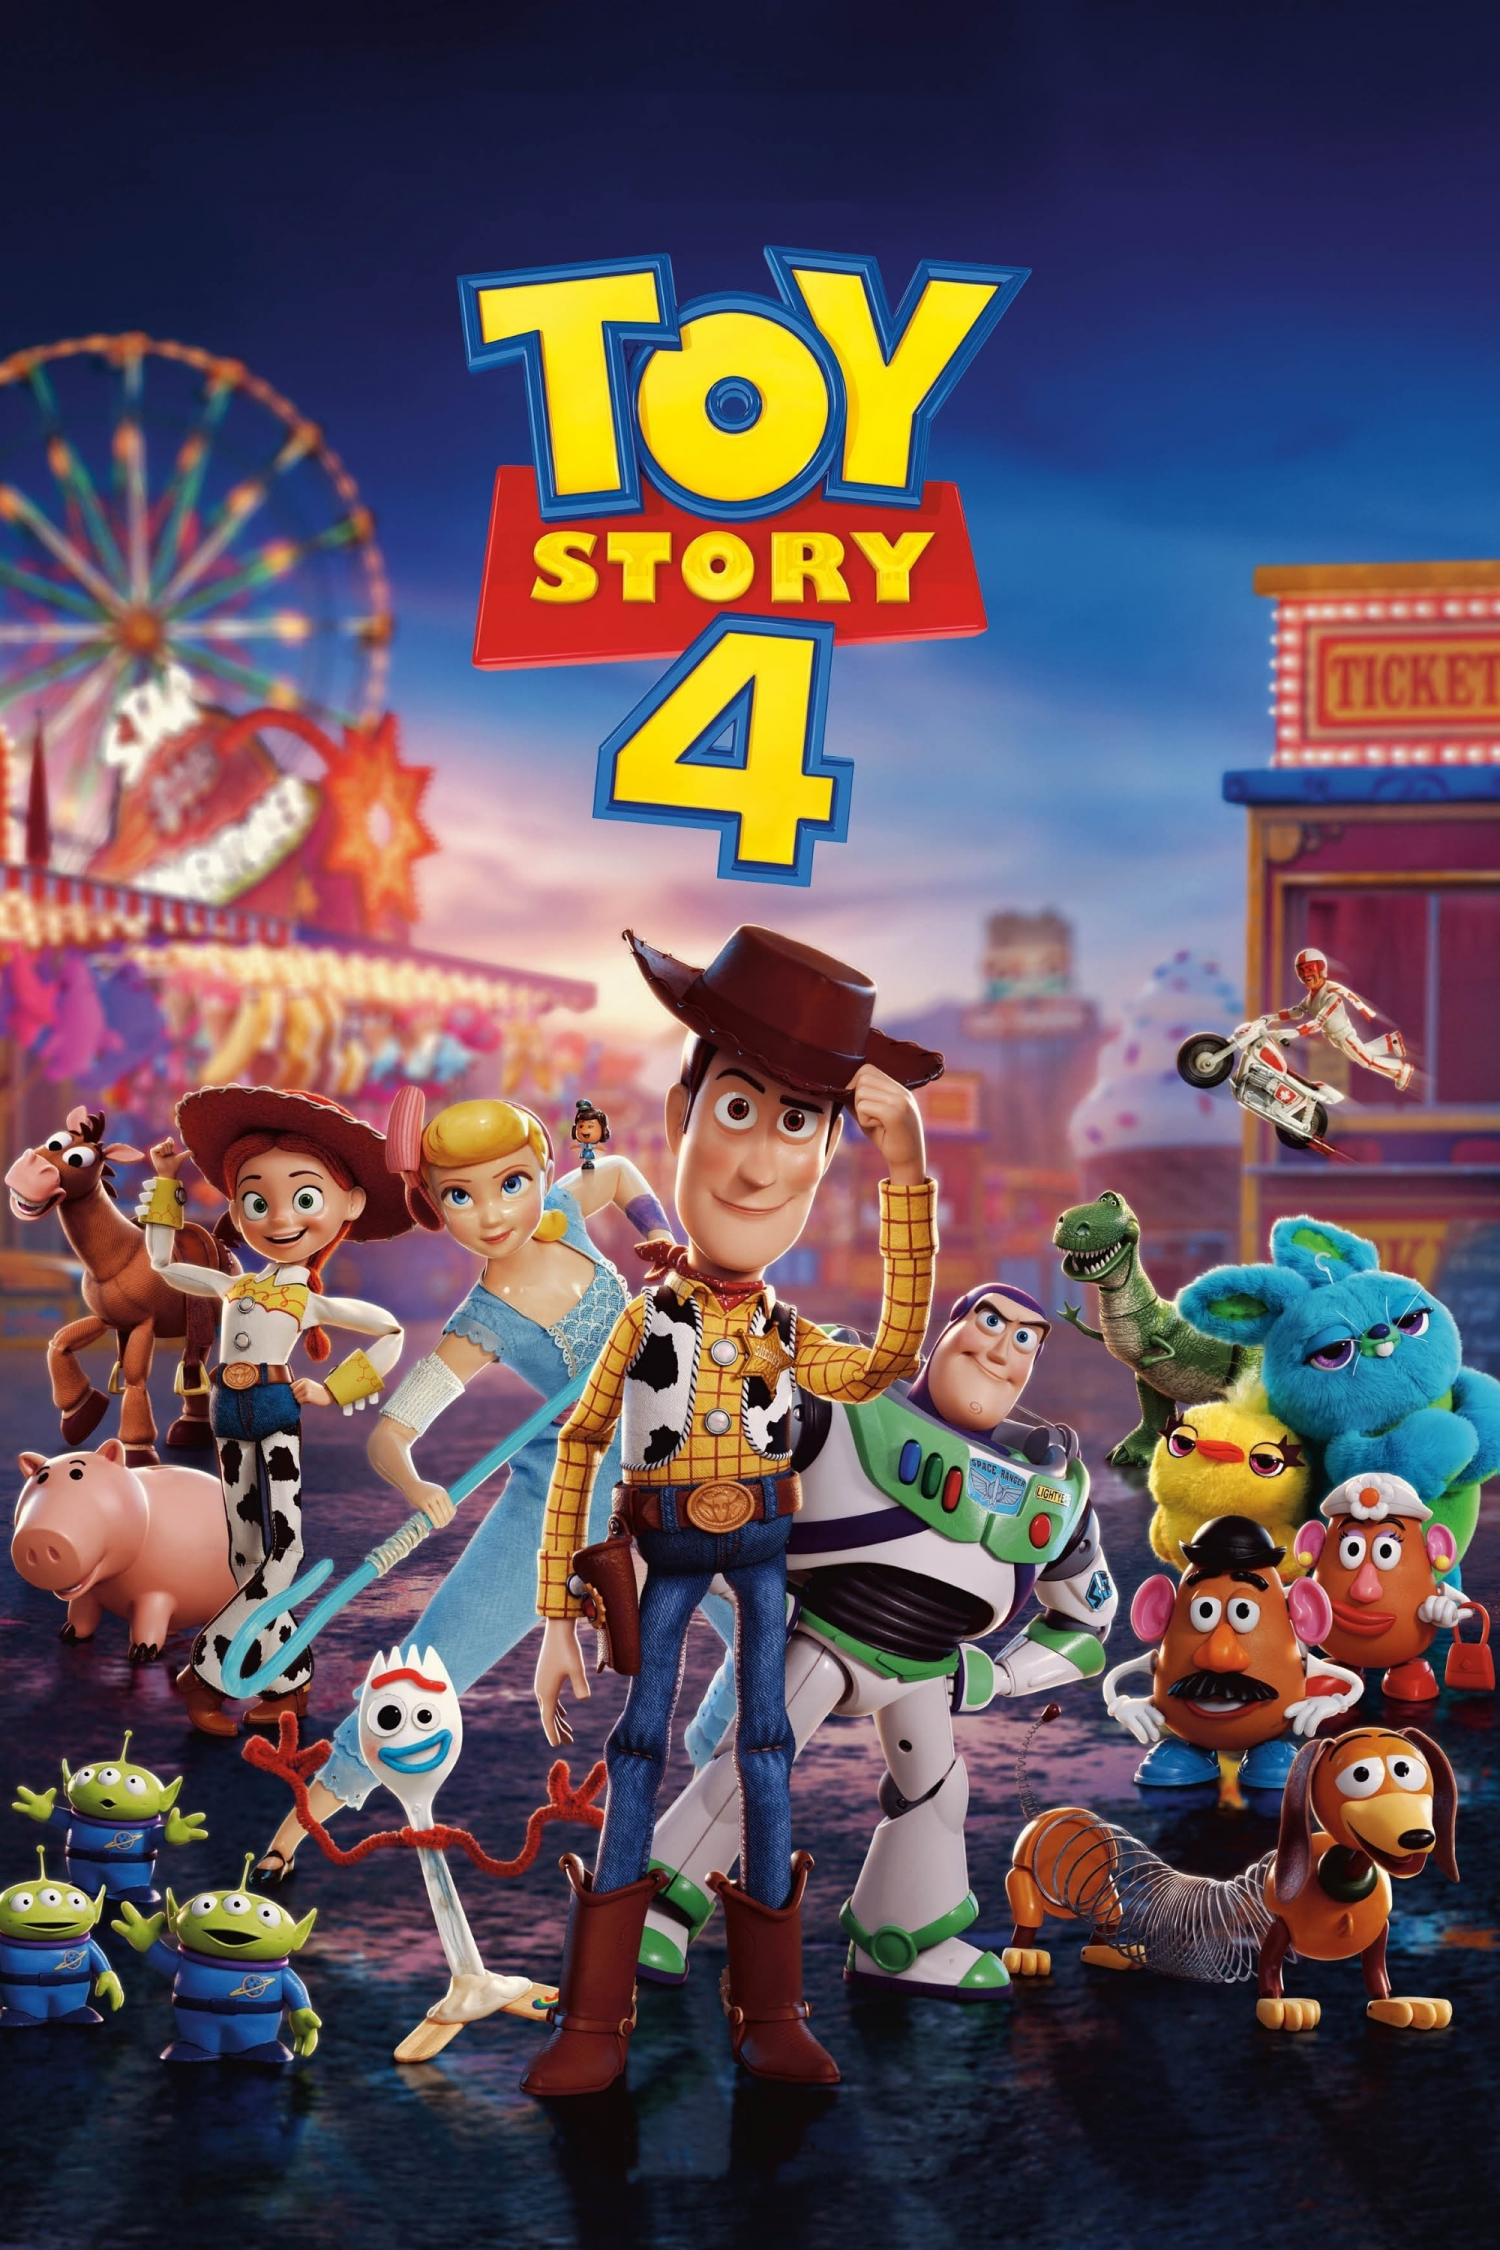 Toy Story 4 Movie Info And Showtimes In Trinidad And